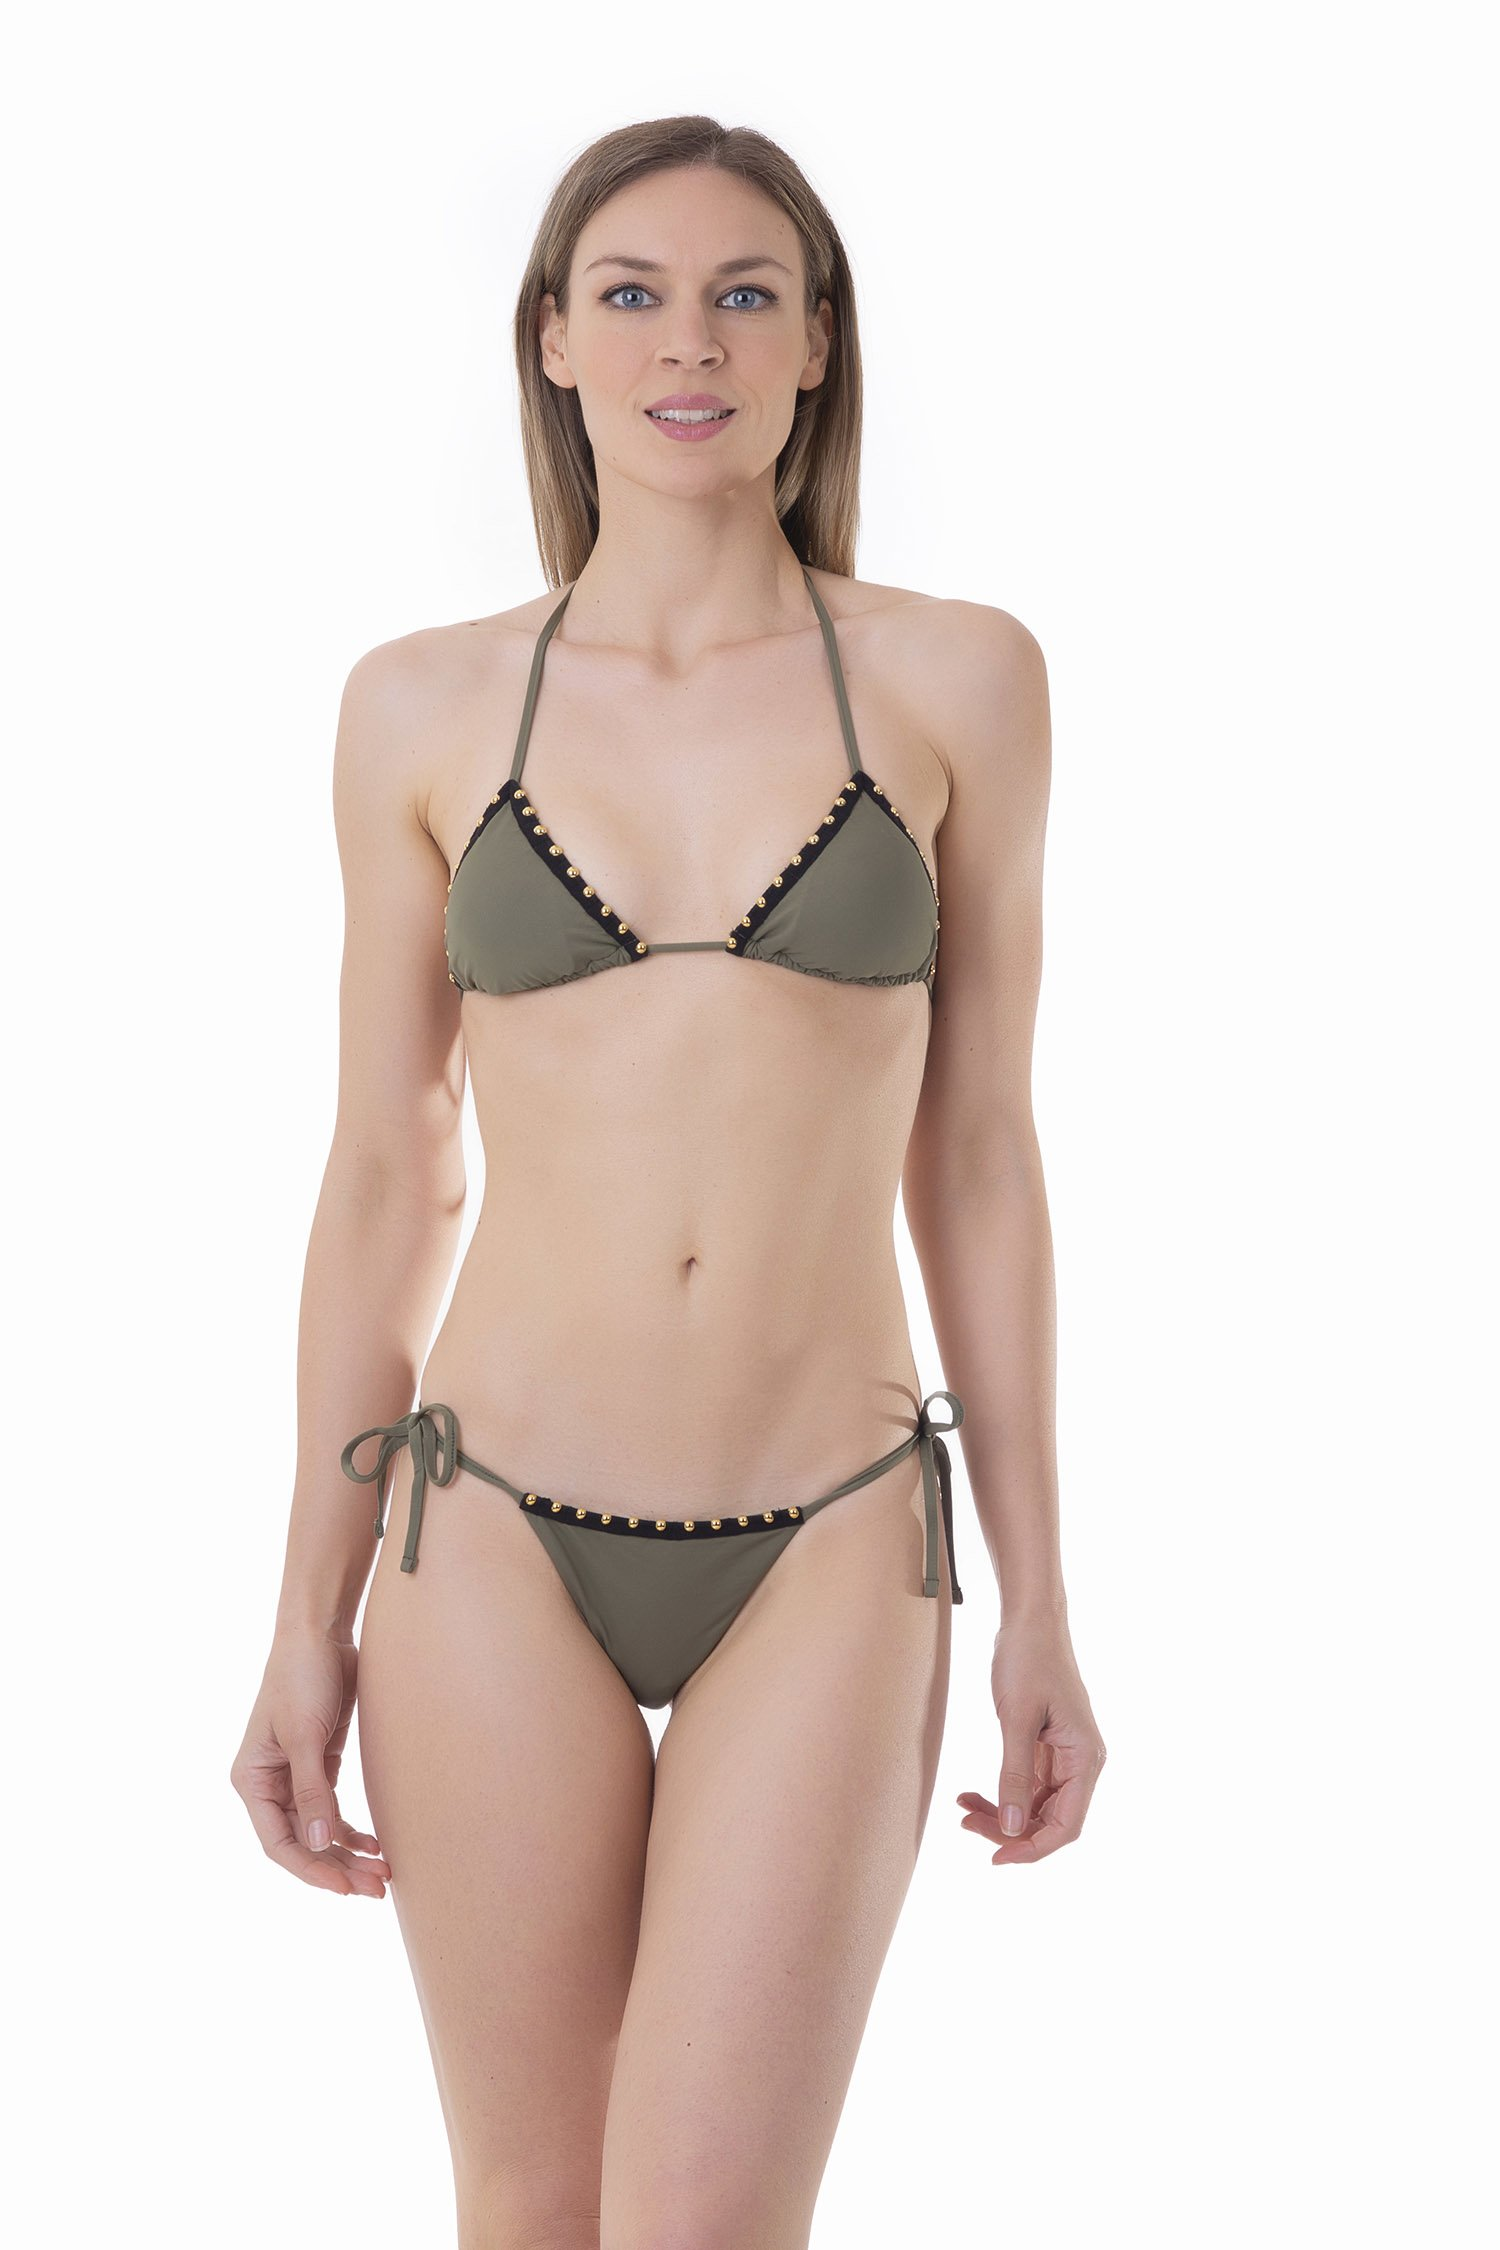 BIKINI TRIMMINGS GOLDEN DETAILS SOLID COLOR - Oliva